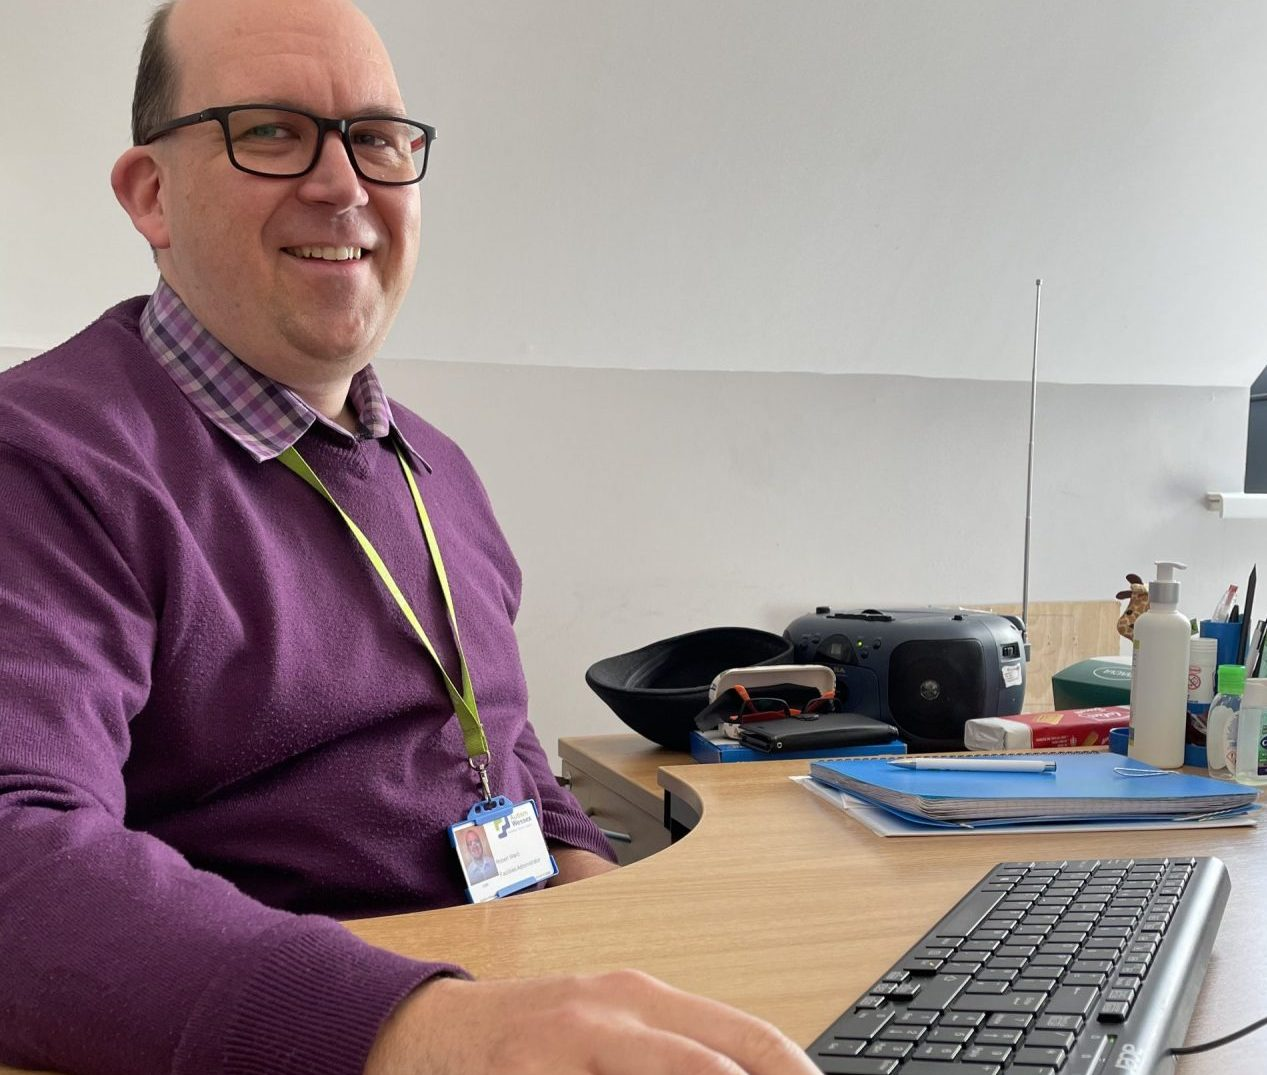 Employee living with autism urges businesses to recruit neurodiverse staff